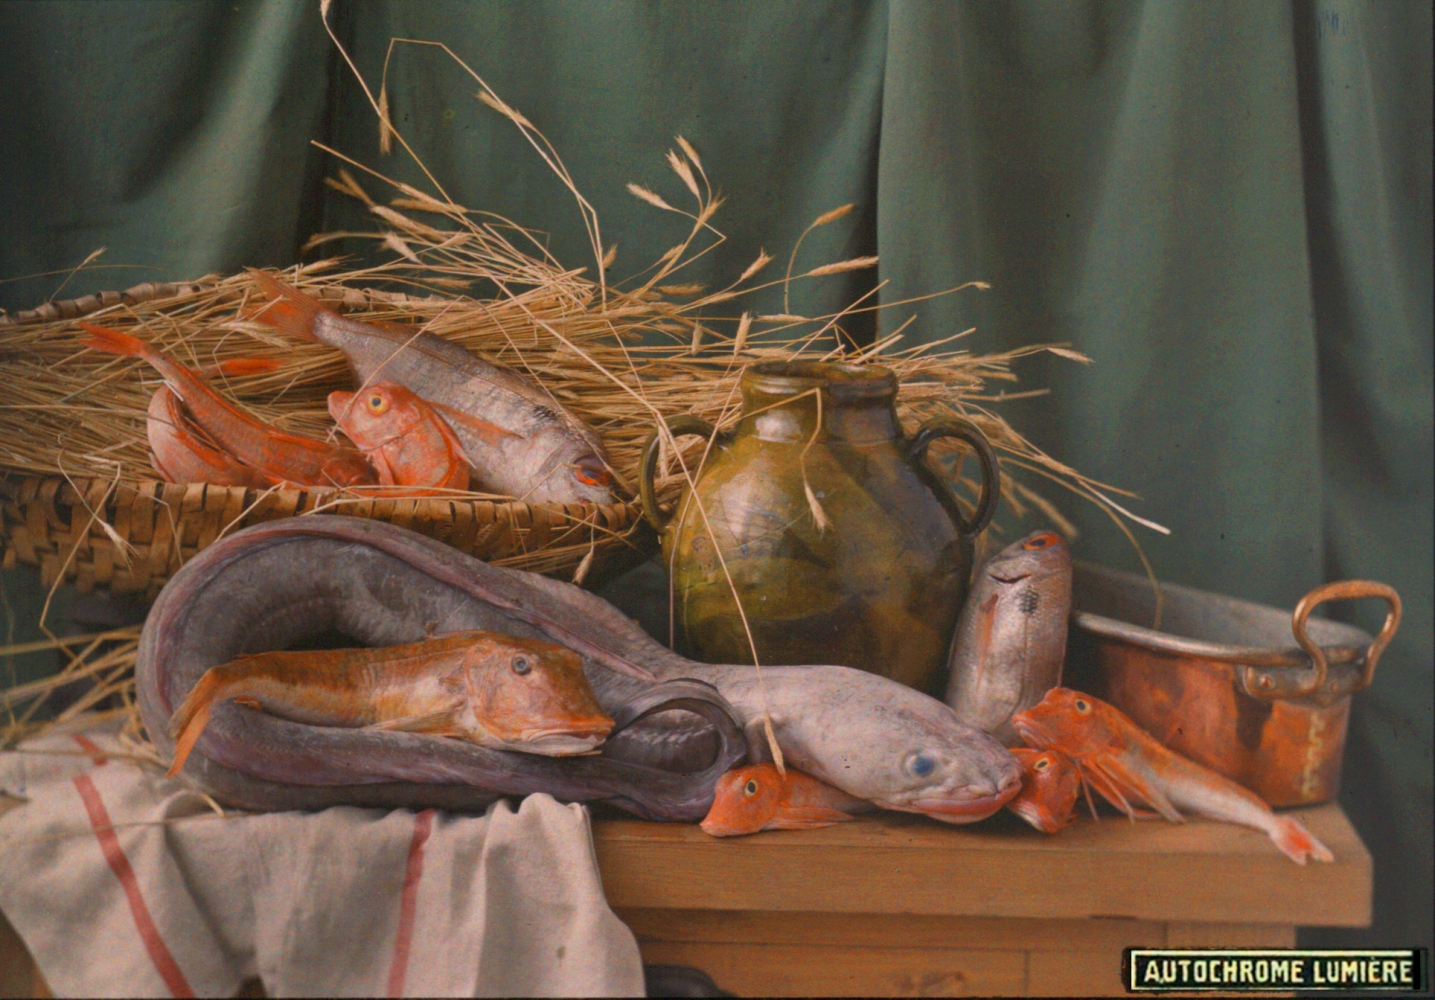 """LUMIÈRE BROTHERS STUDIO (French) Still life with fish, circa 1907 Autochrome 13.9 x 17.9 cm """"Autochromes Lumière"""" printed label"""